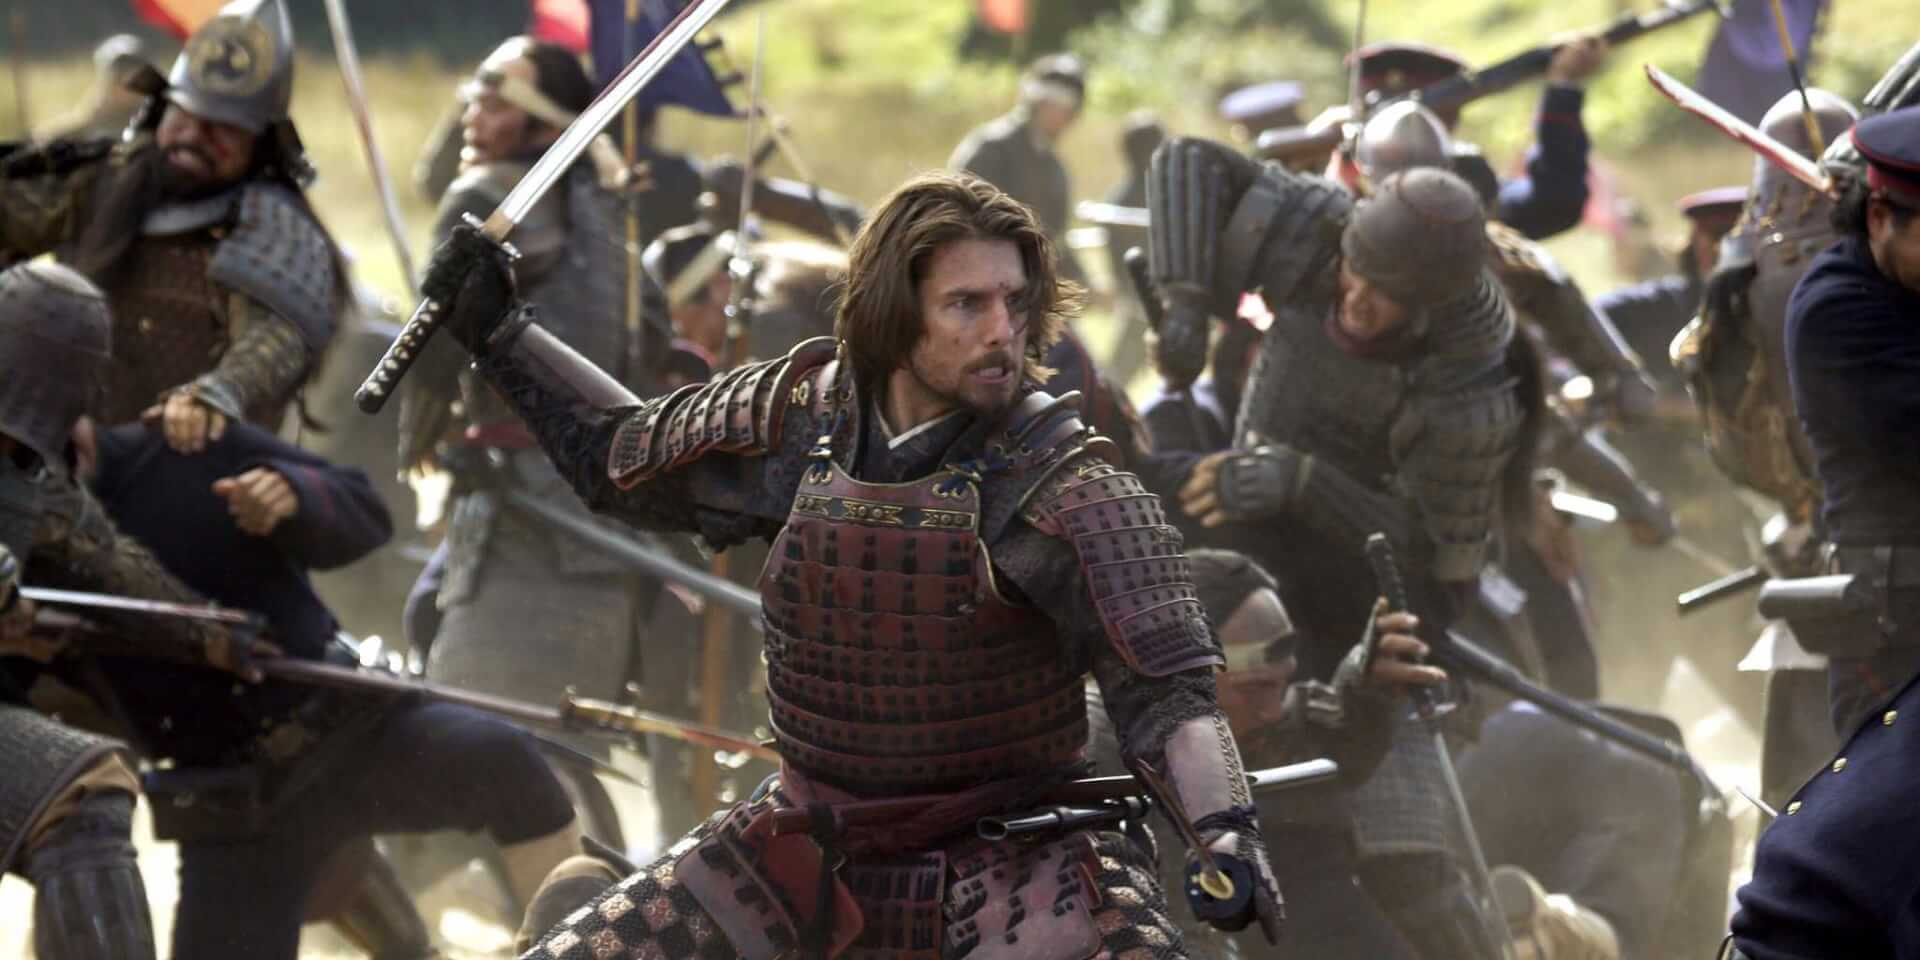 Tom Cruise Last Samurai movies racism